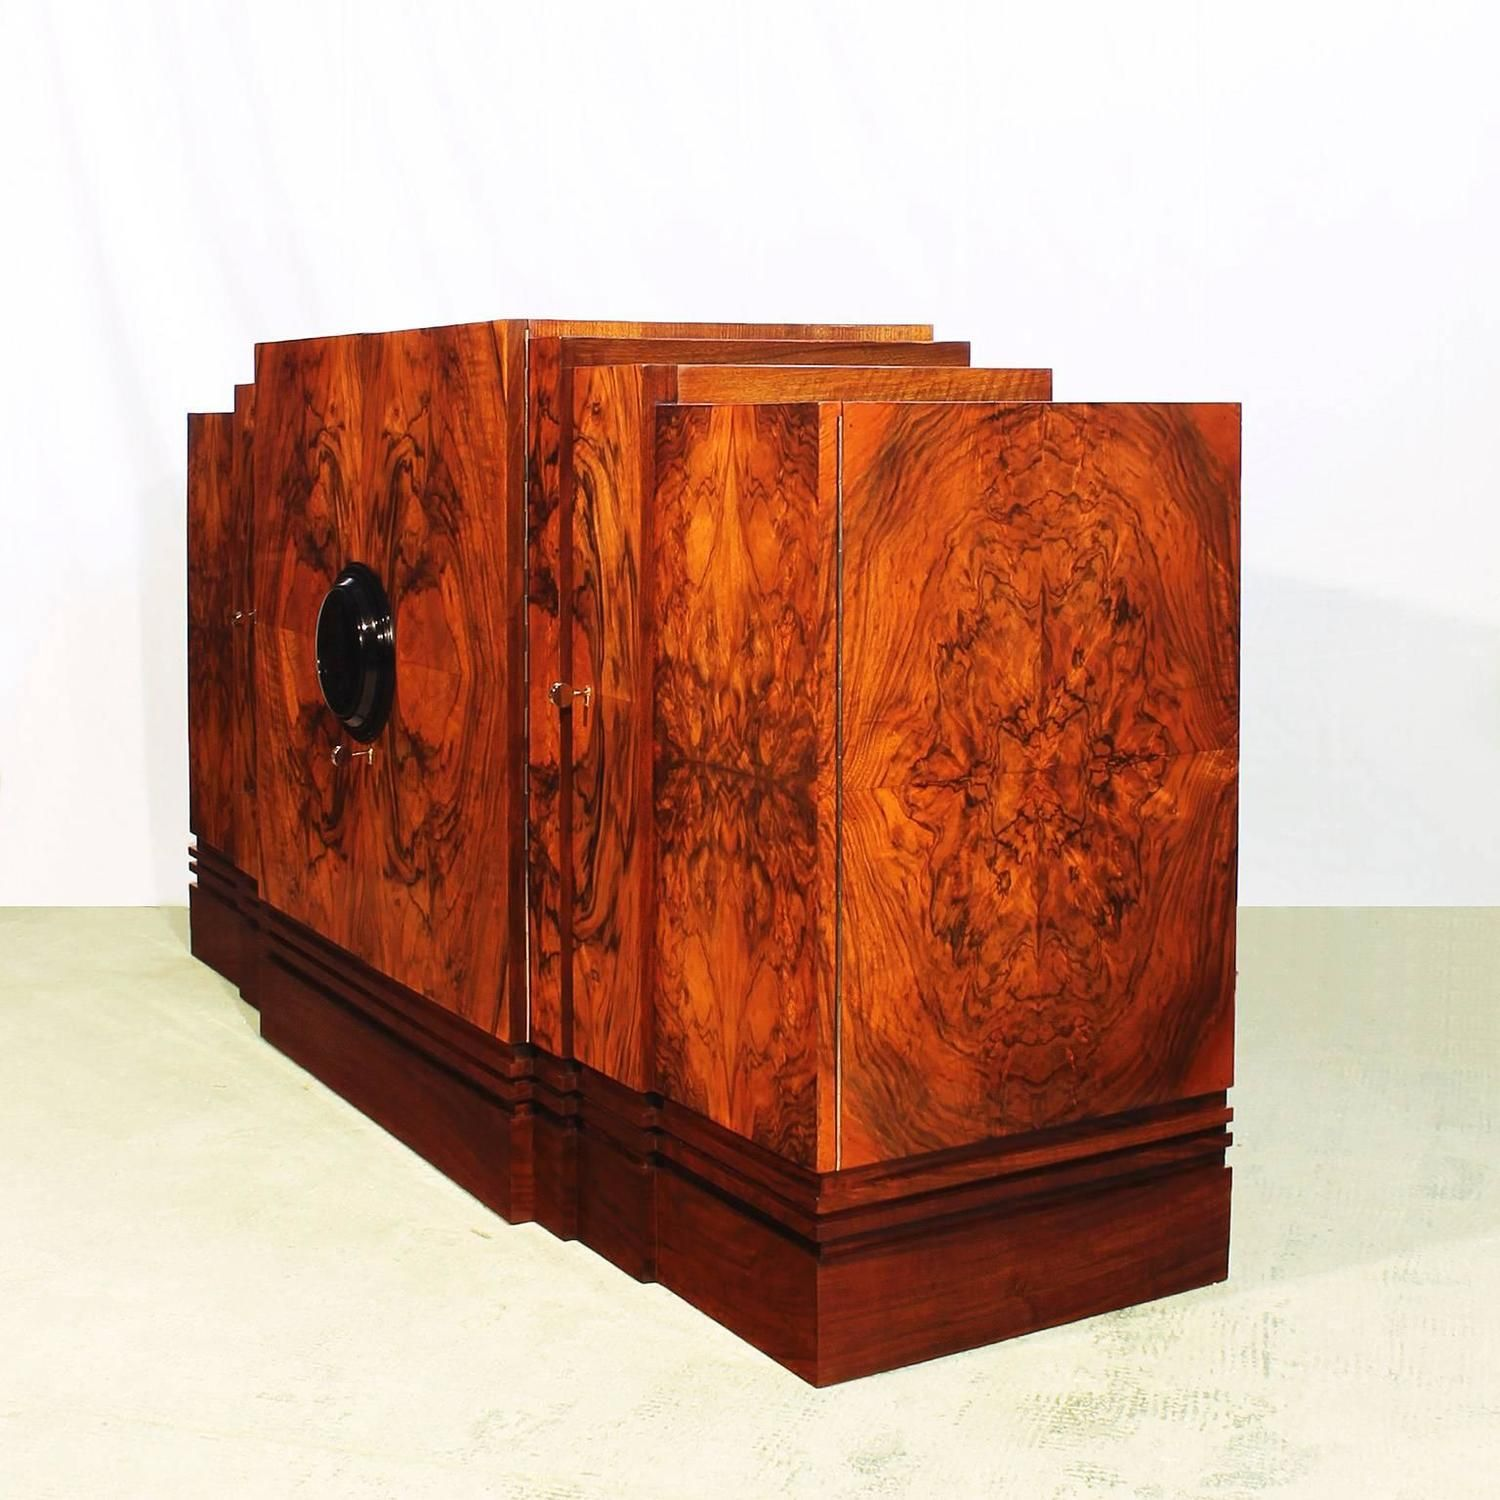 Art Deco Sideboard in the Style of Maison Mercier | From a unique collection of antique and modern sideboards at https://www.1stdibs.com/furniture/storage-case-pieces/sideboards/